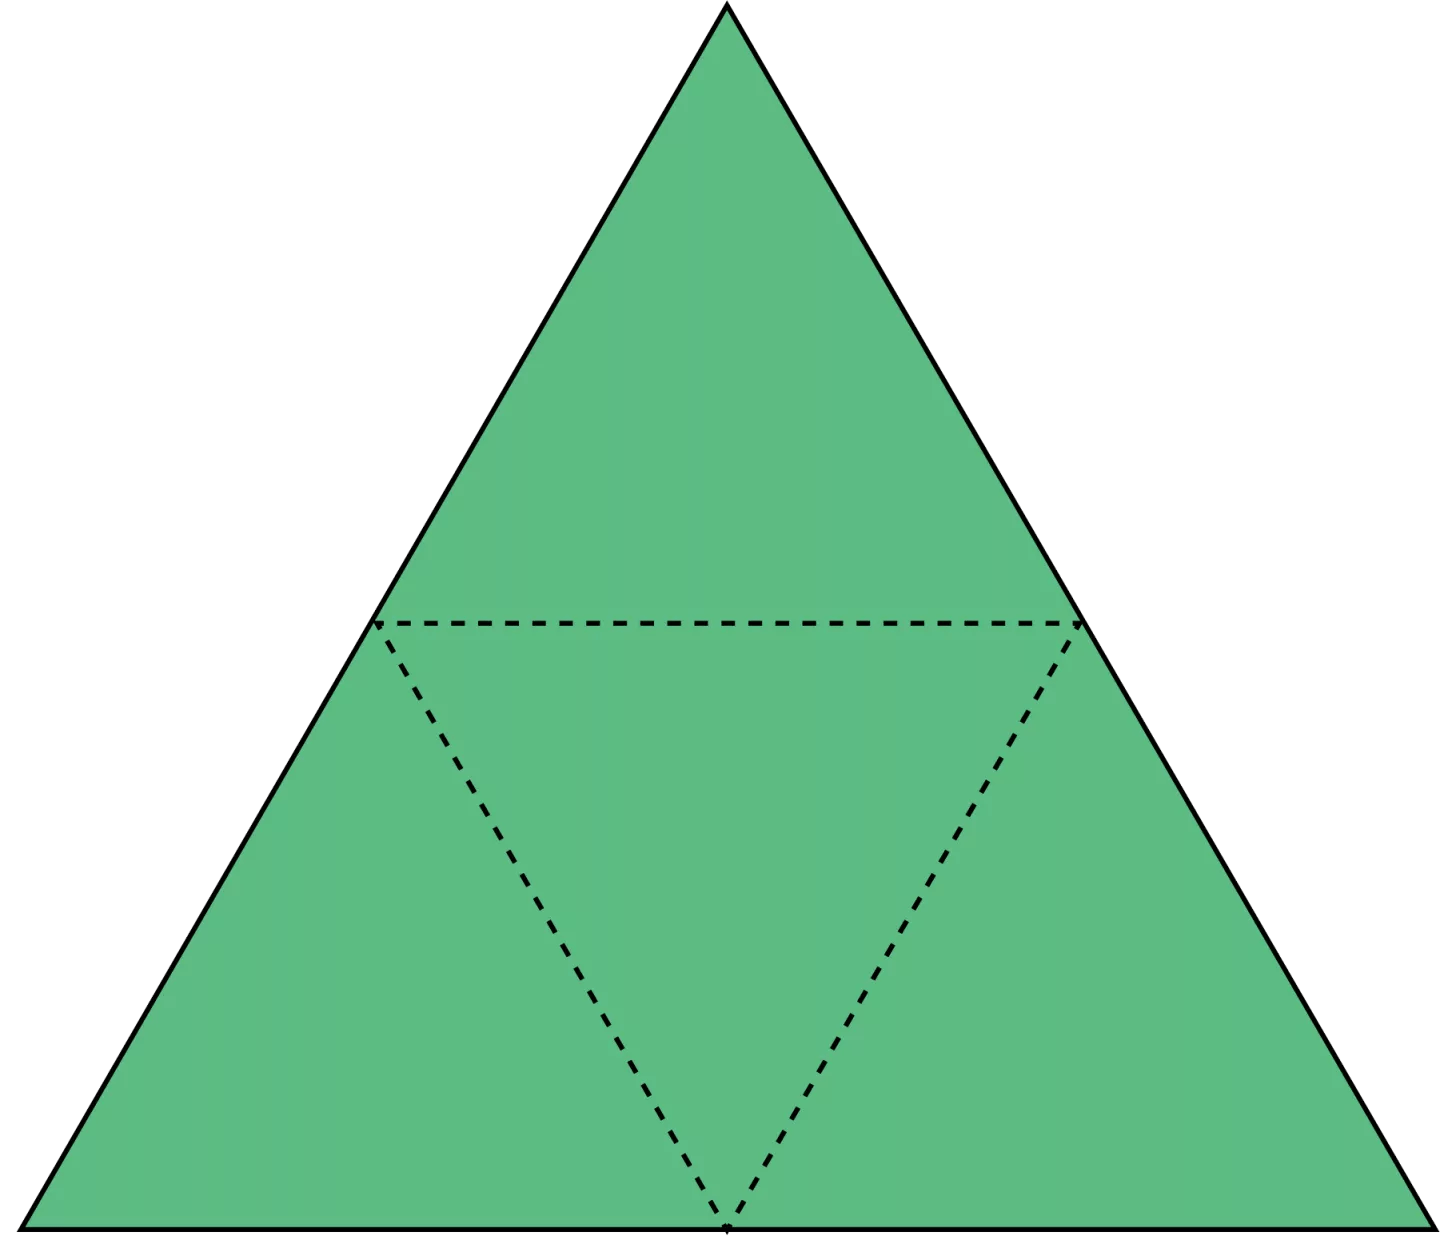 Triangular Based Pyramid Facts For Kids